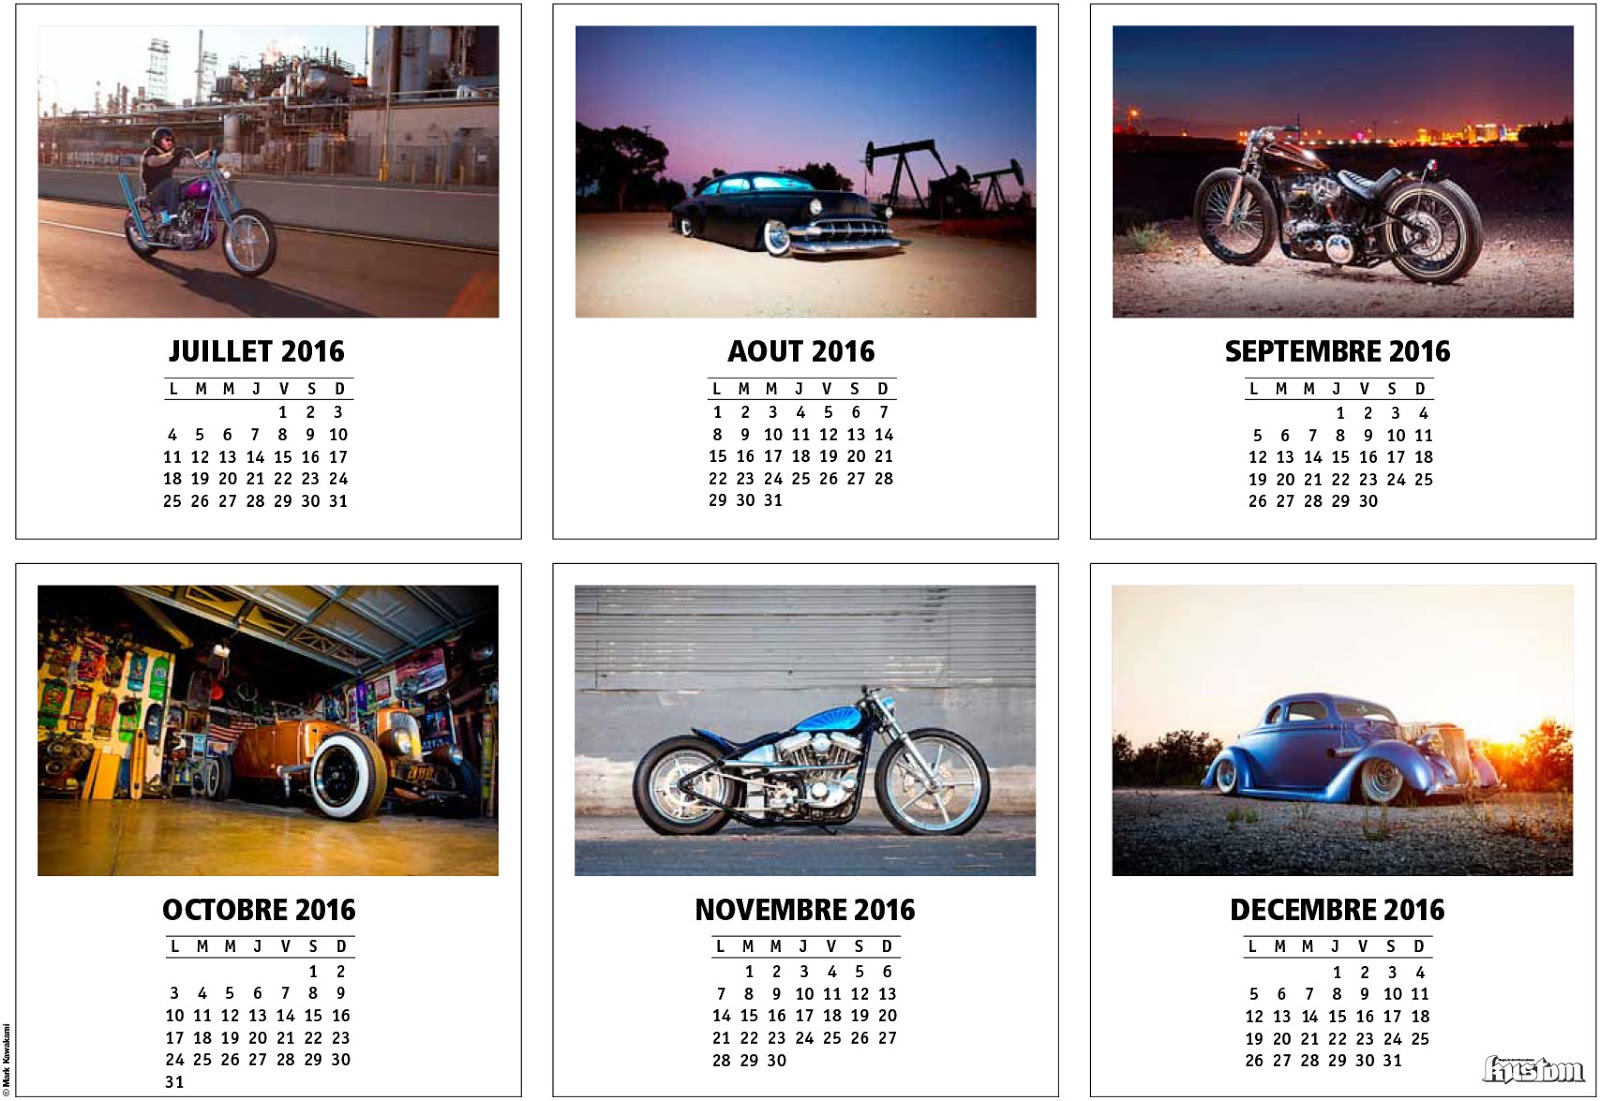 Art Calendar Business Magazine : Joyrides art co kustom magazine calendar